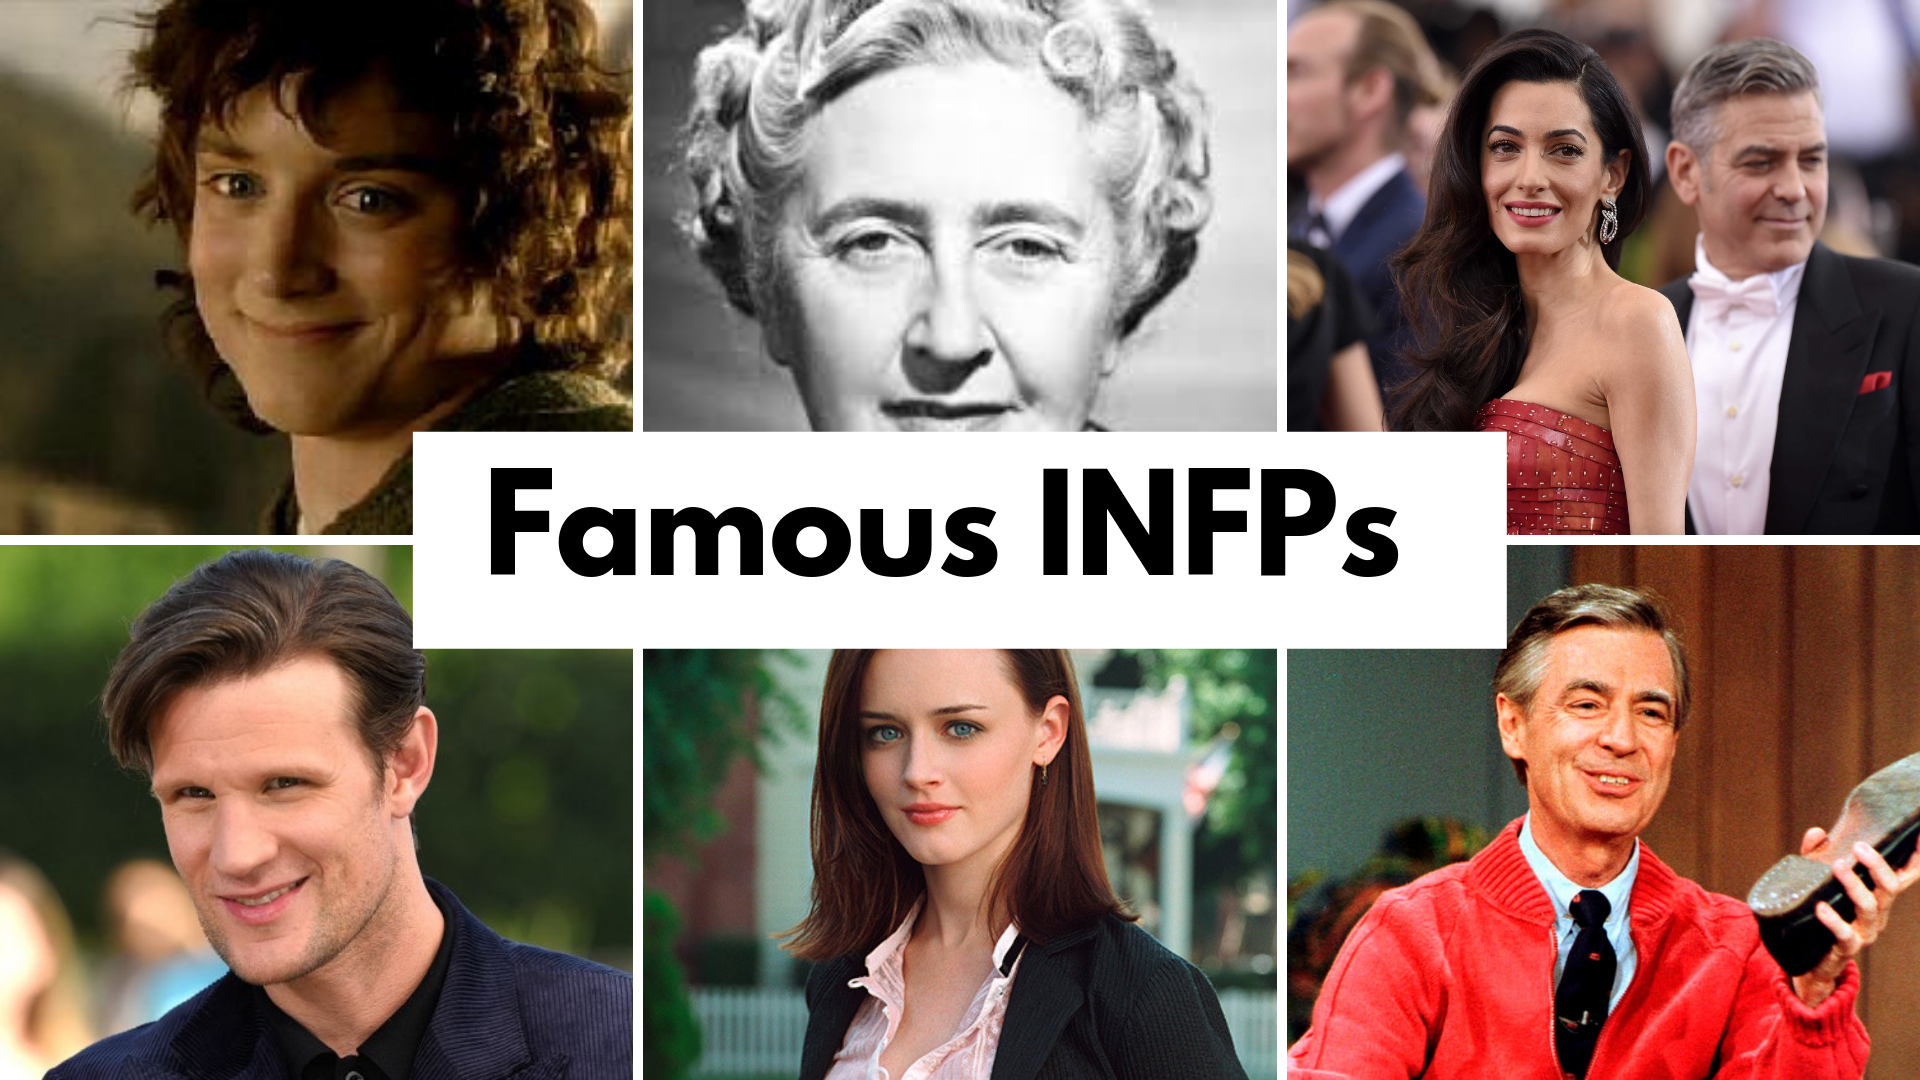 famous infp, famous infps, infp celebrities, famous infp personalities, infp personality types